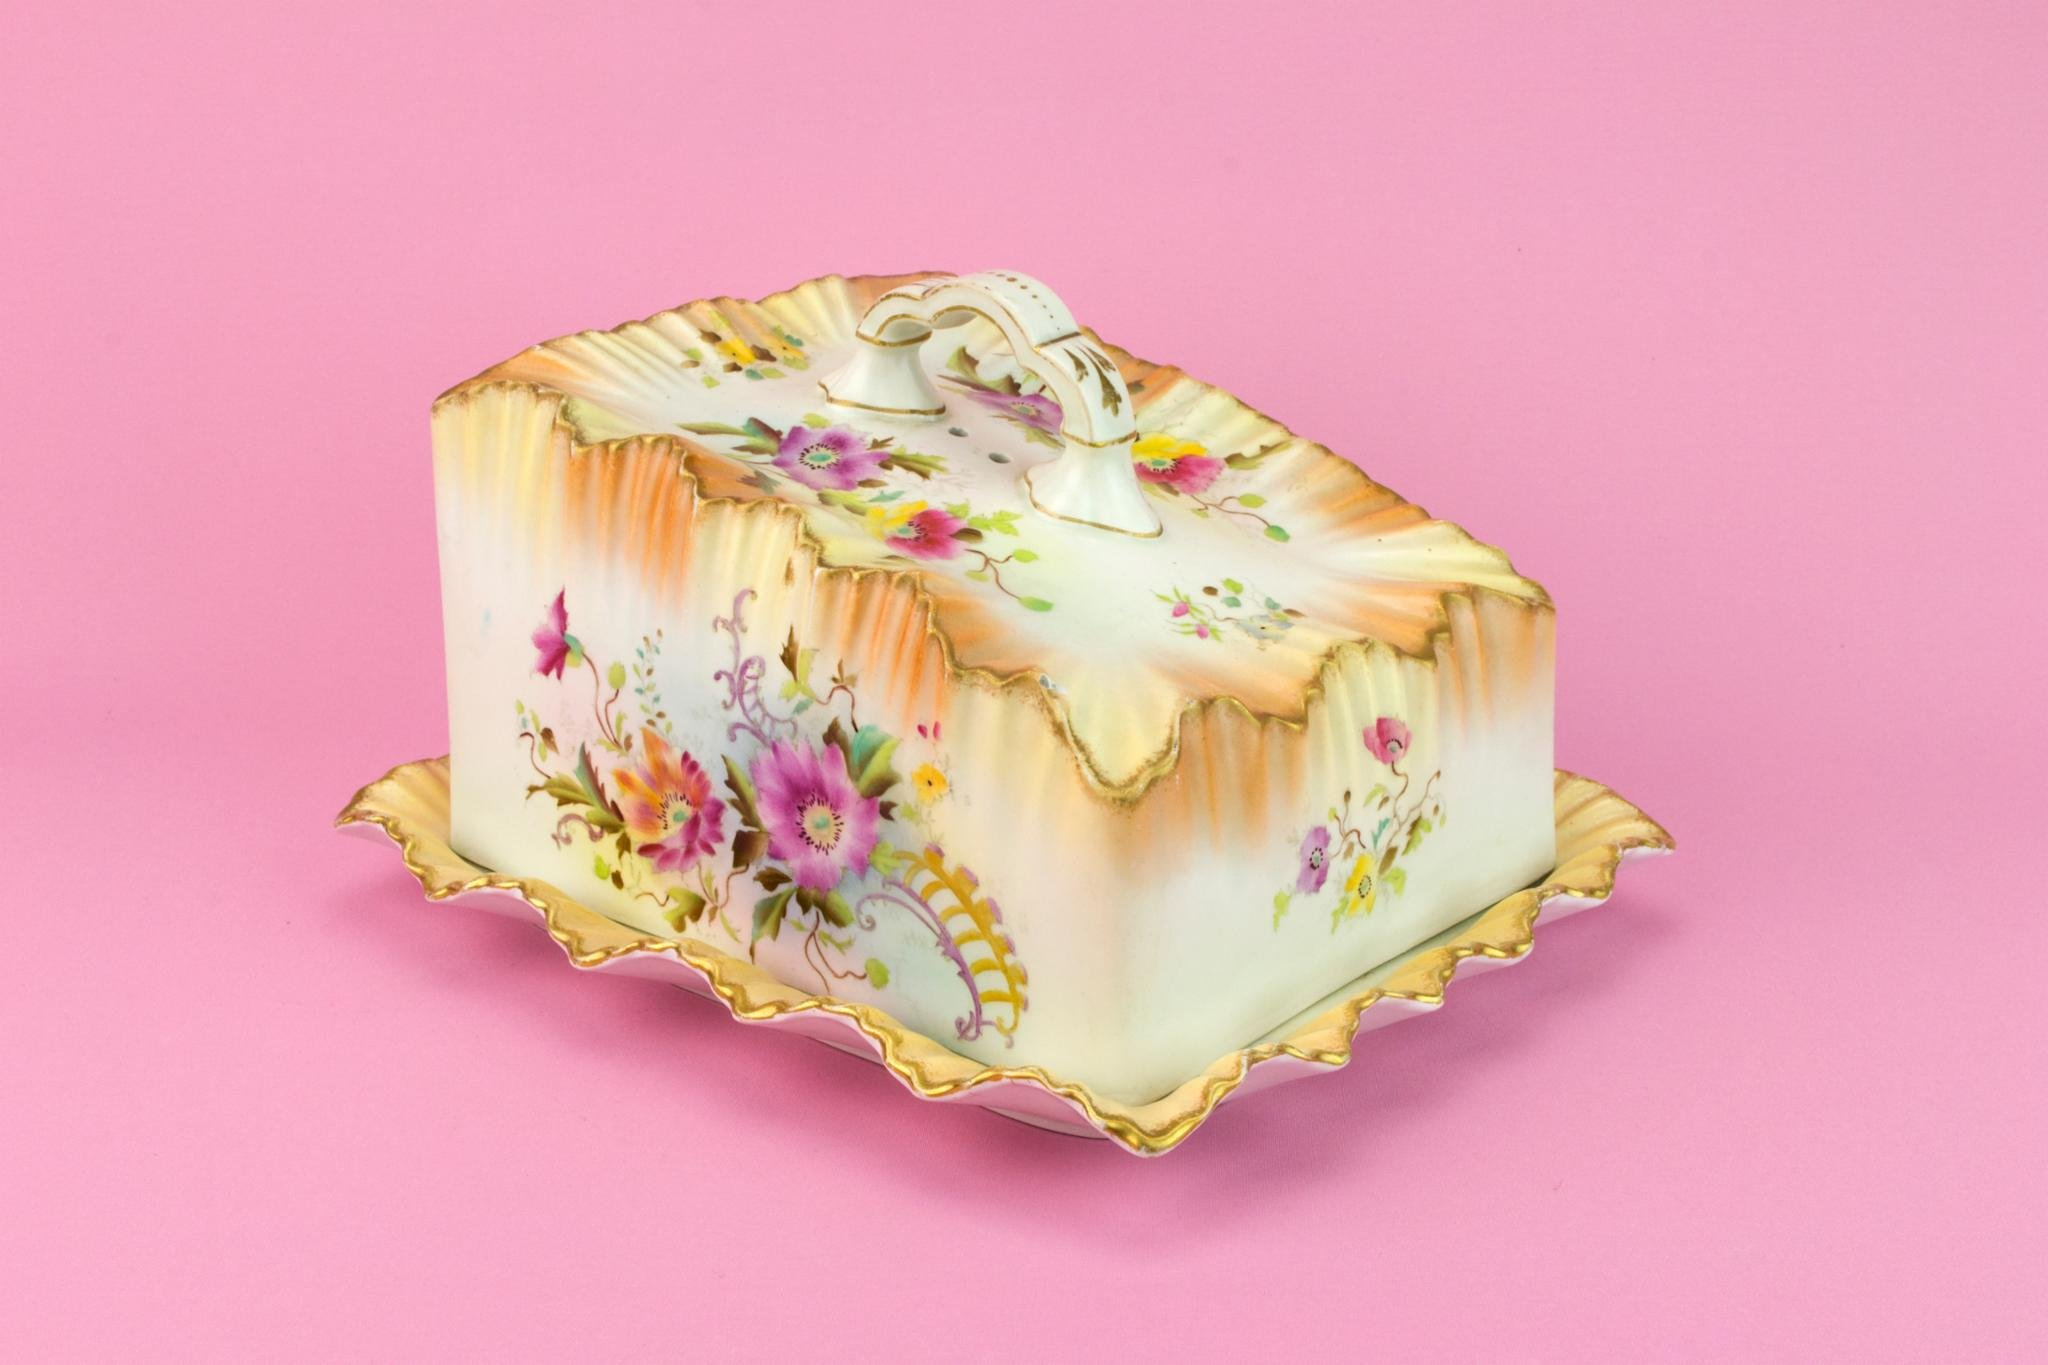 Carlton Ware Large Art Nouveau Butter Cheese Dish Rectangular Pink Airbrushed Wiltshaw & Robinson Antique Victorian English 1890s Ceramic